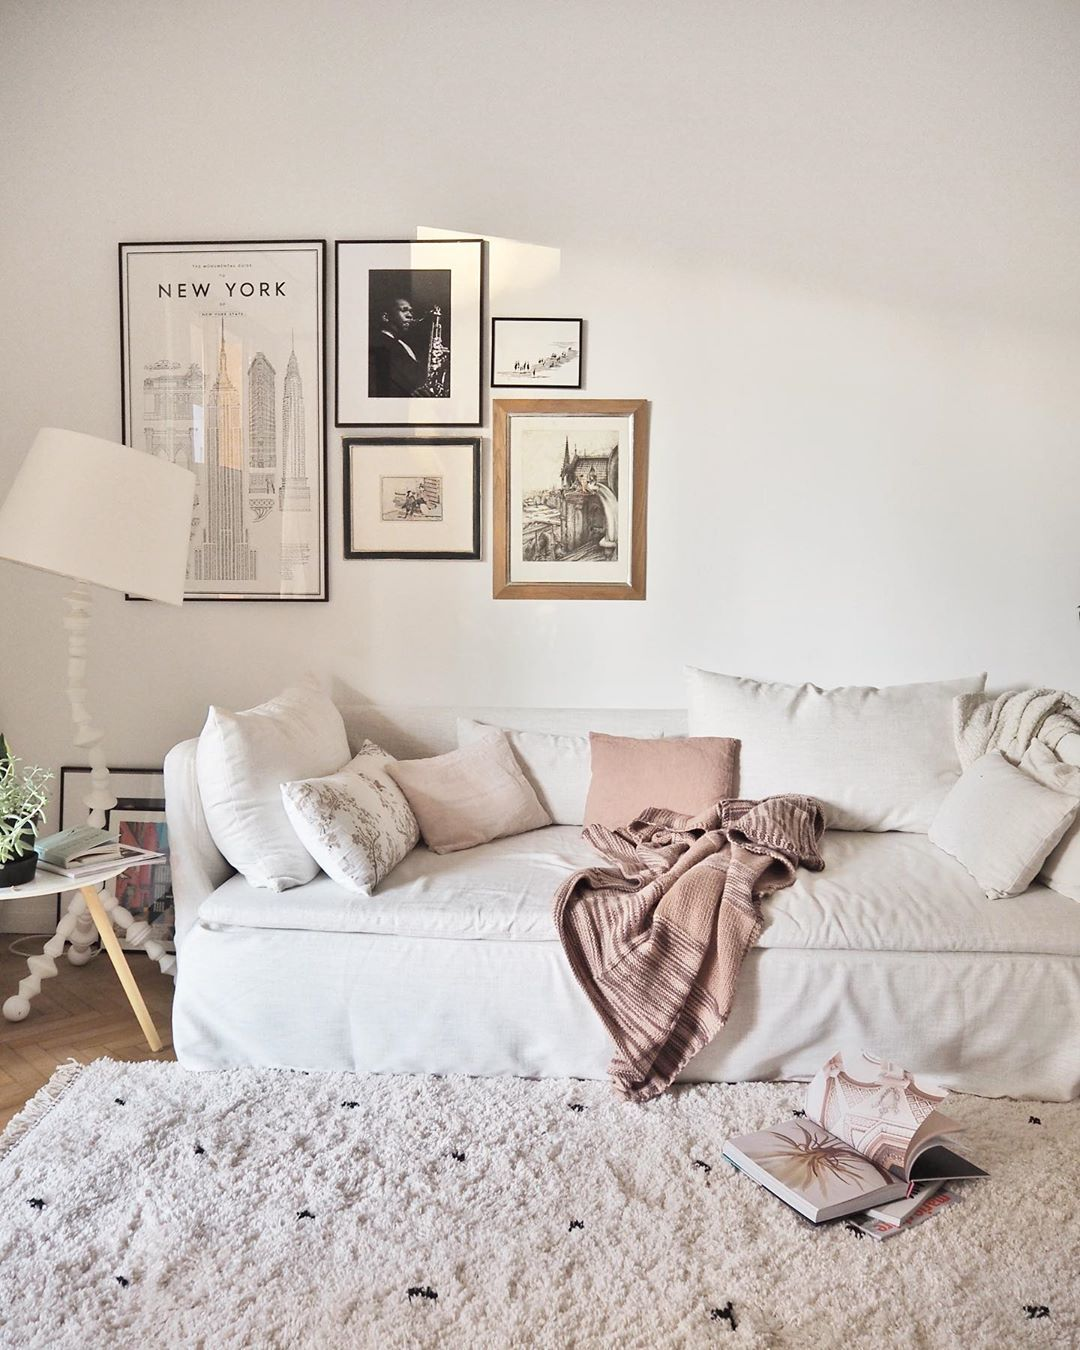 A Sunny Day In New York Living Room Style Scandinavian Home Design Couches Living Room Living Room Style Scandinavian Home Design Living room ny lyrics